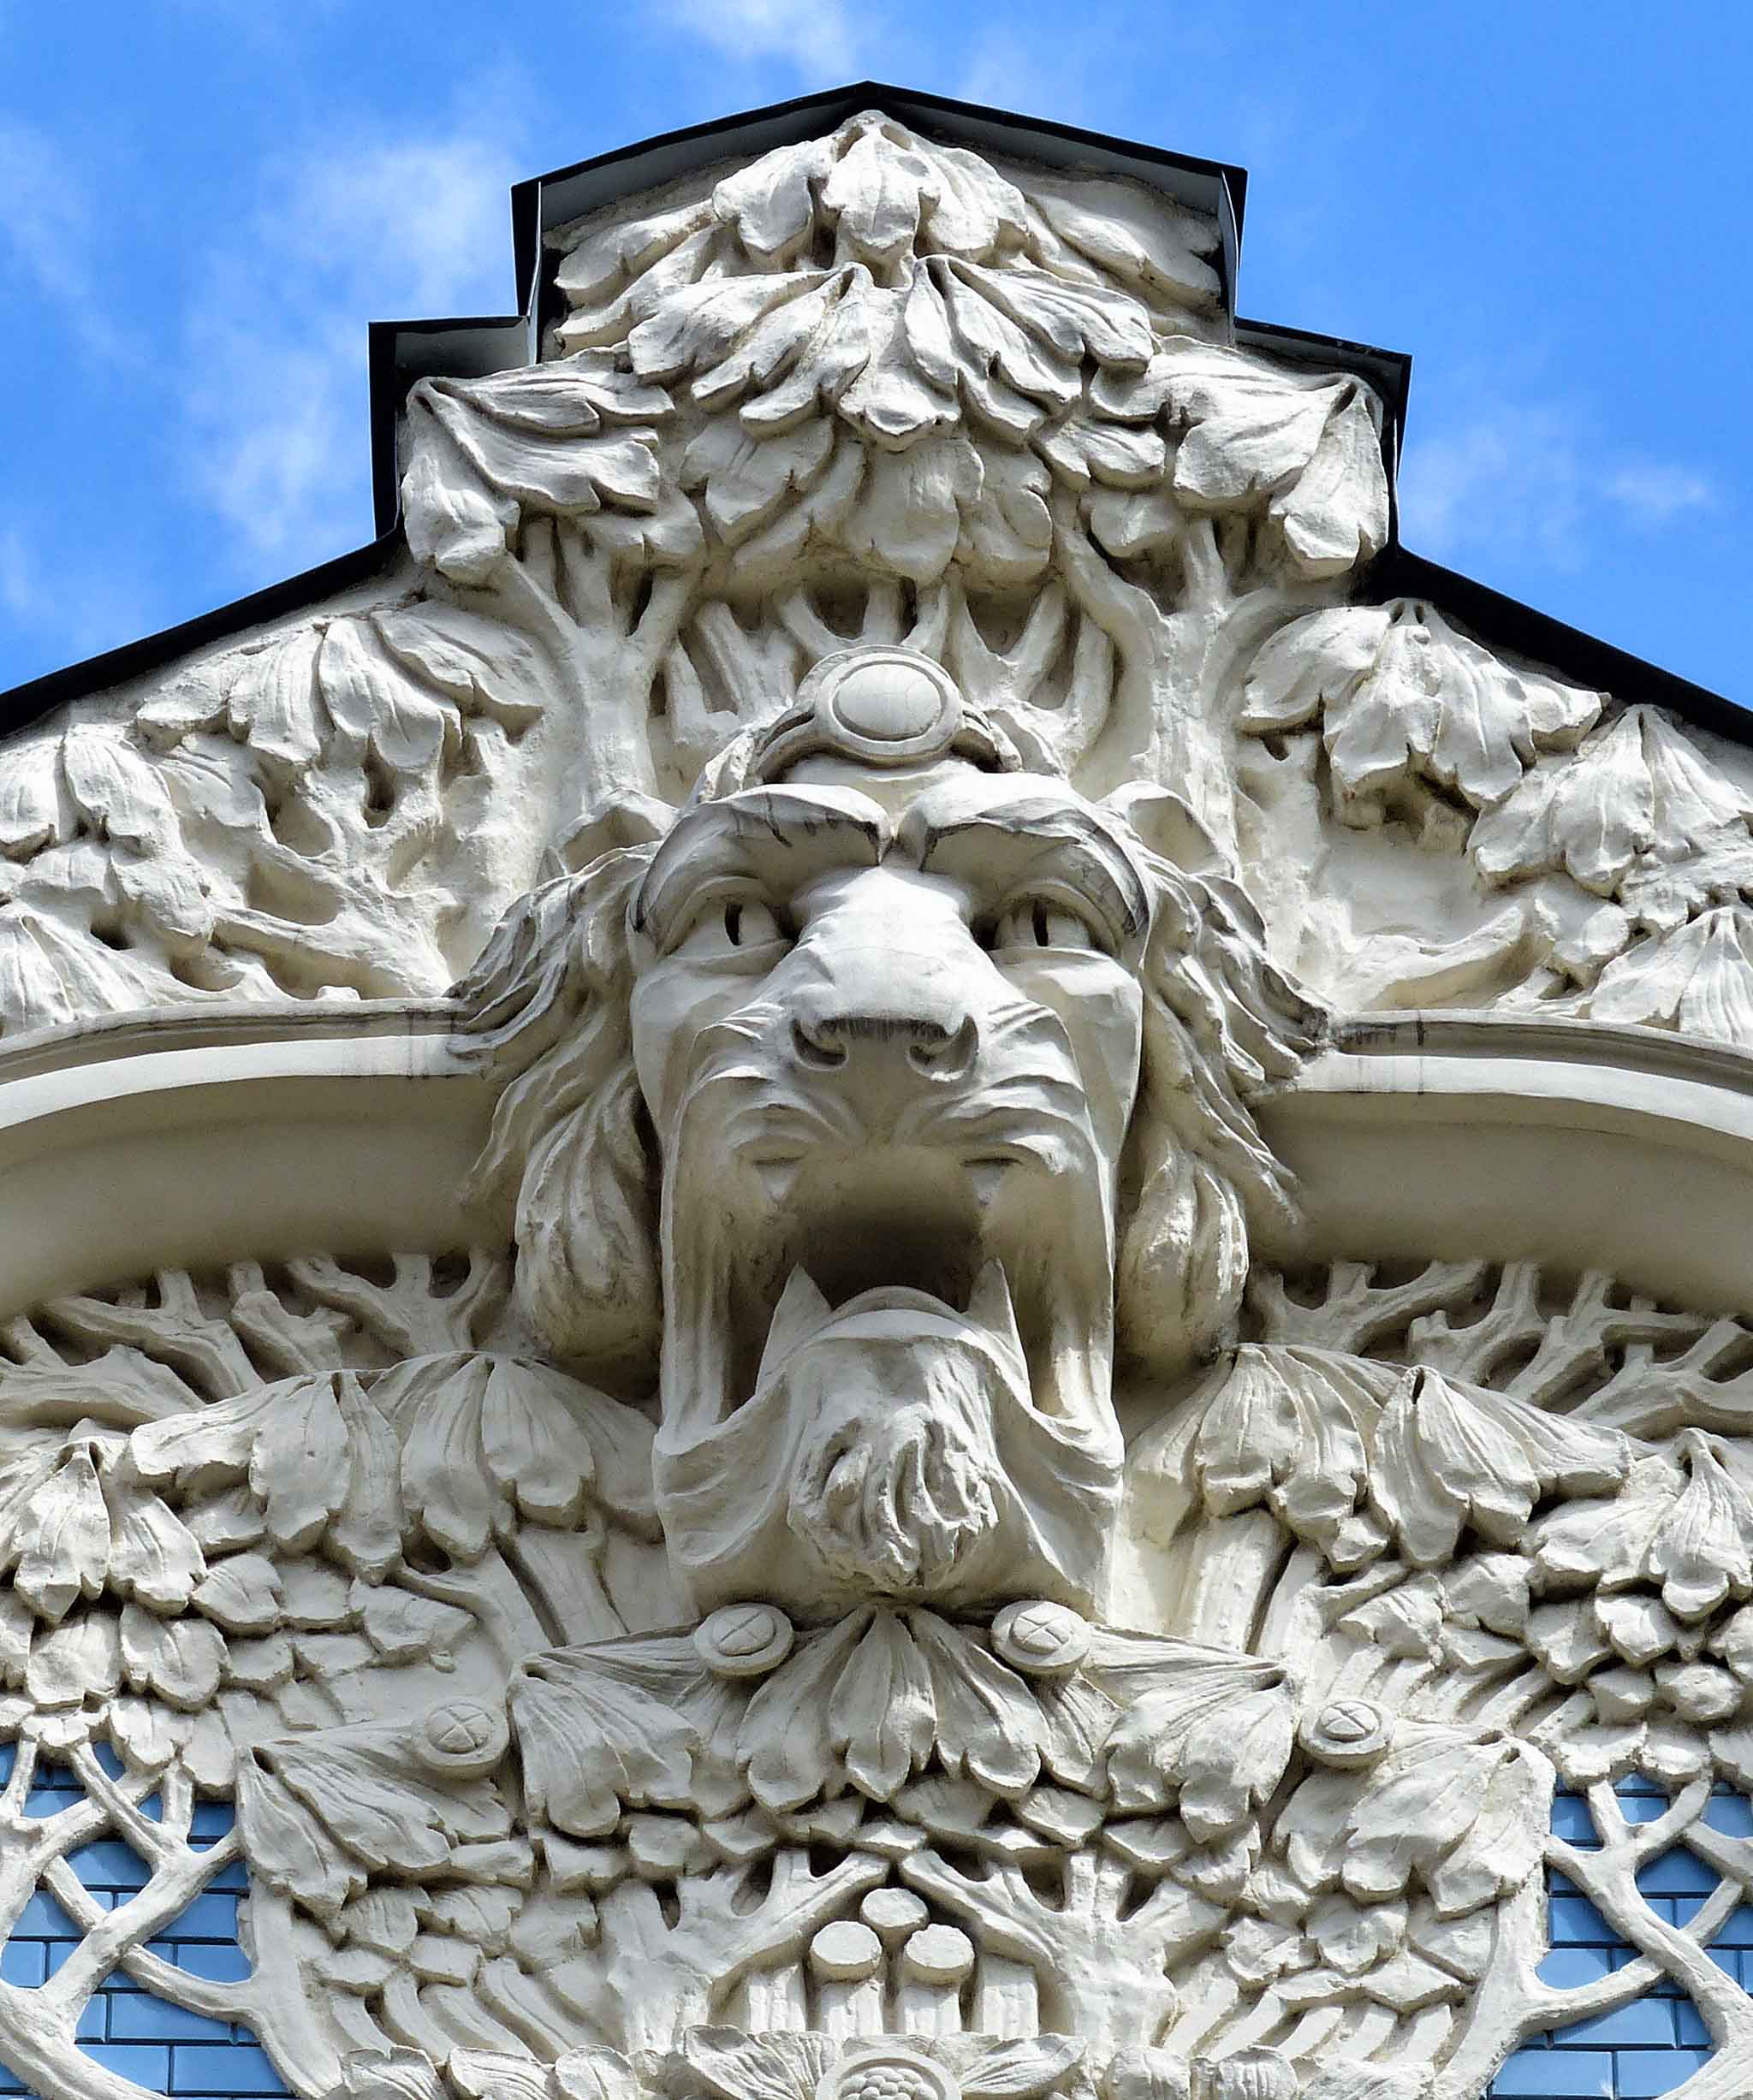 Fierce lion face carved in white stone on a building